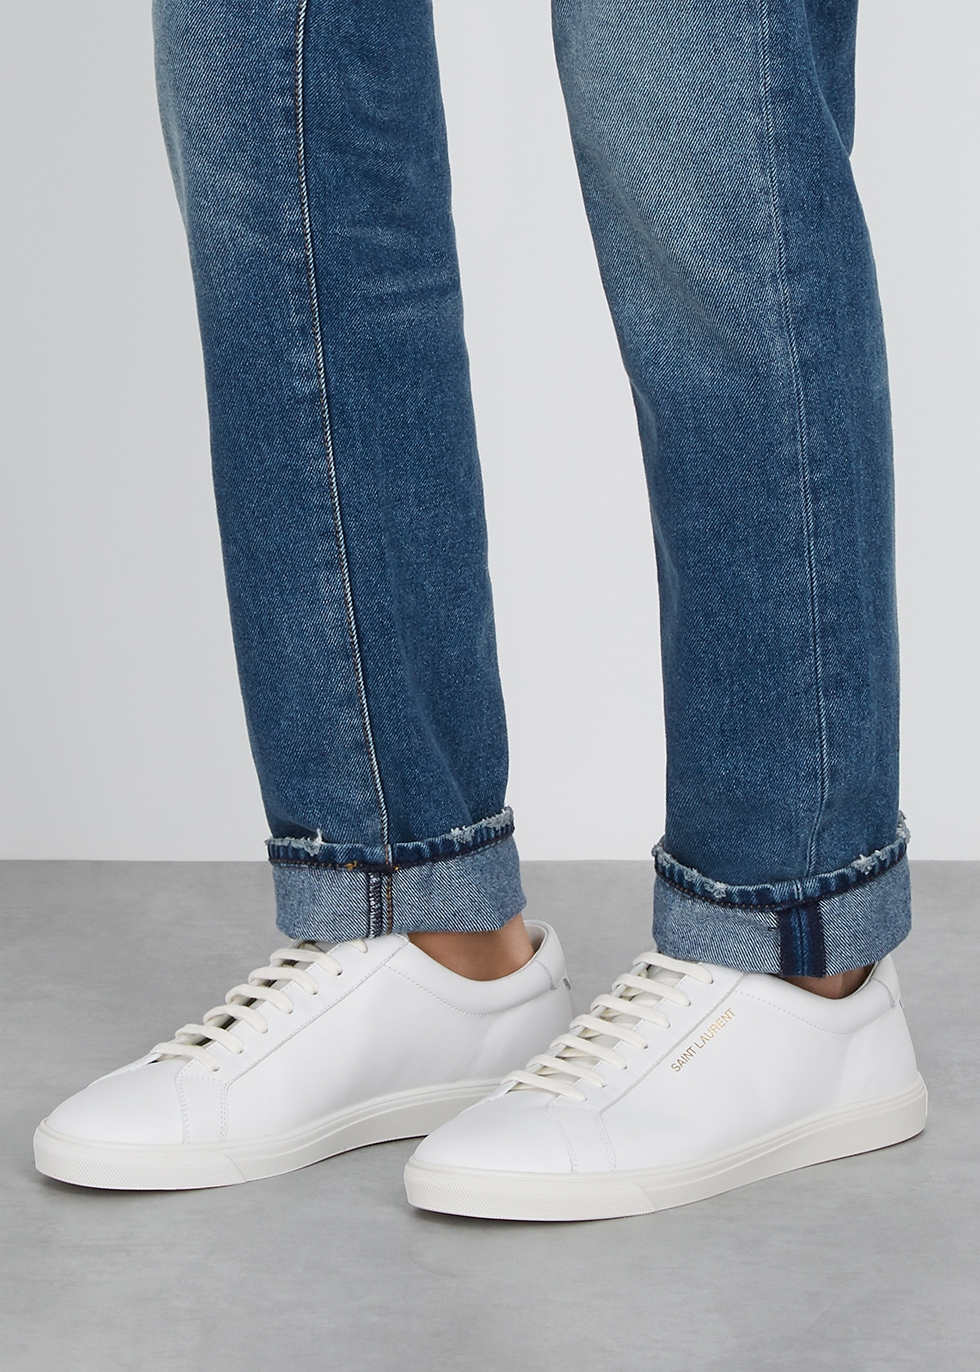 Saint Laurent Andy white leather